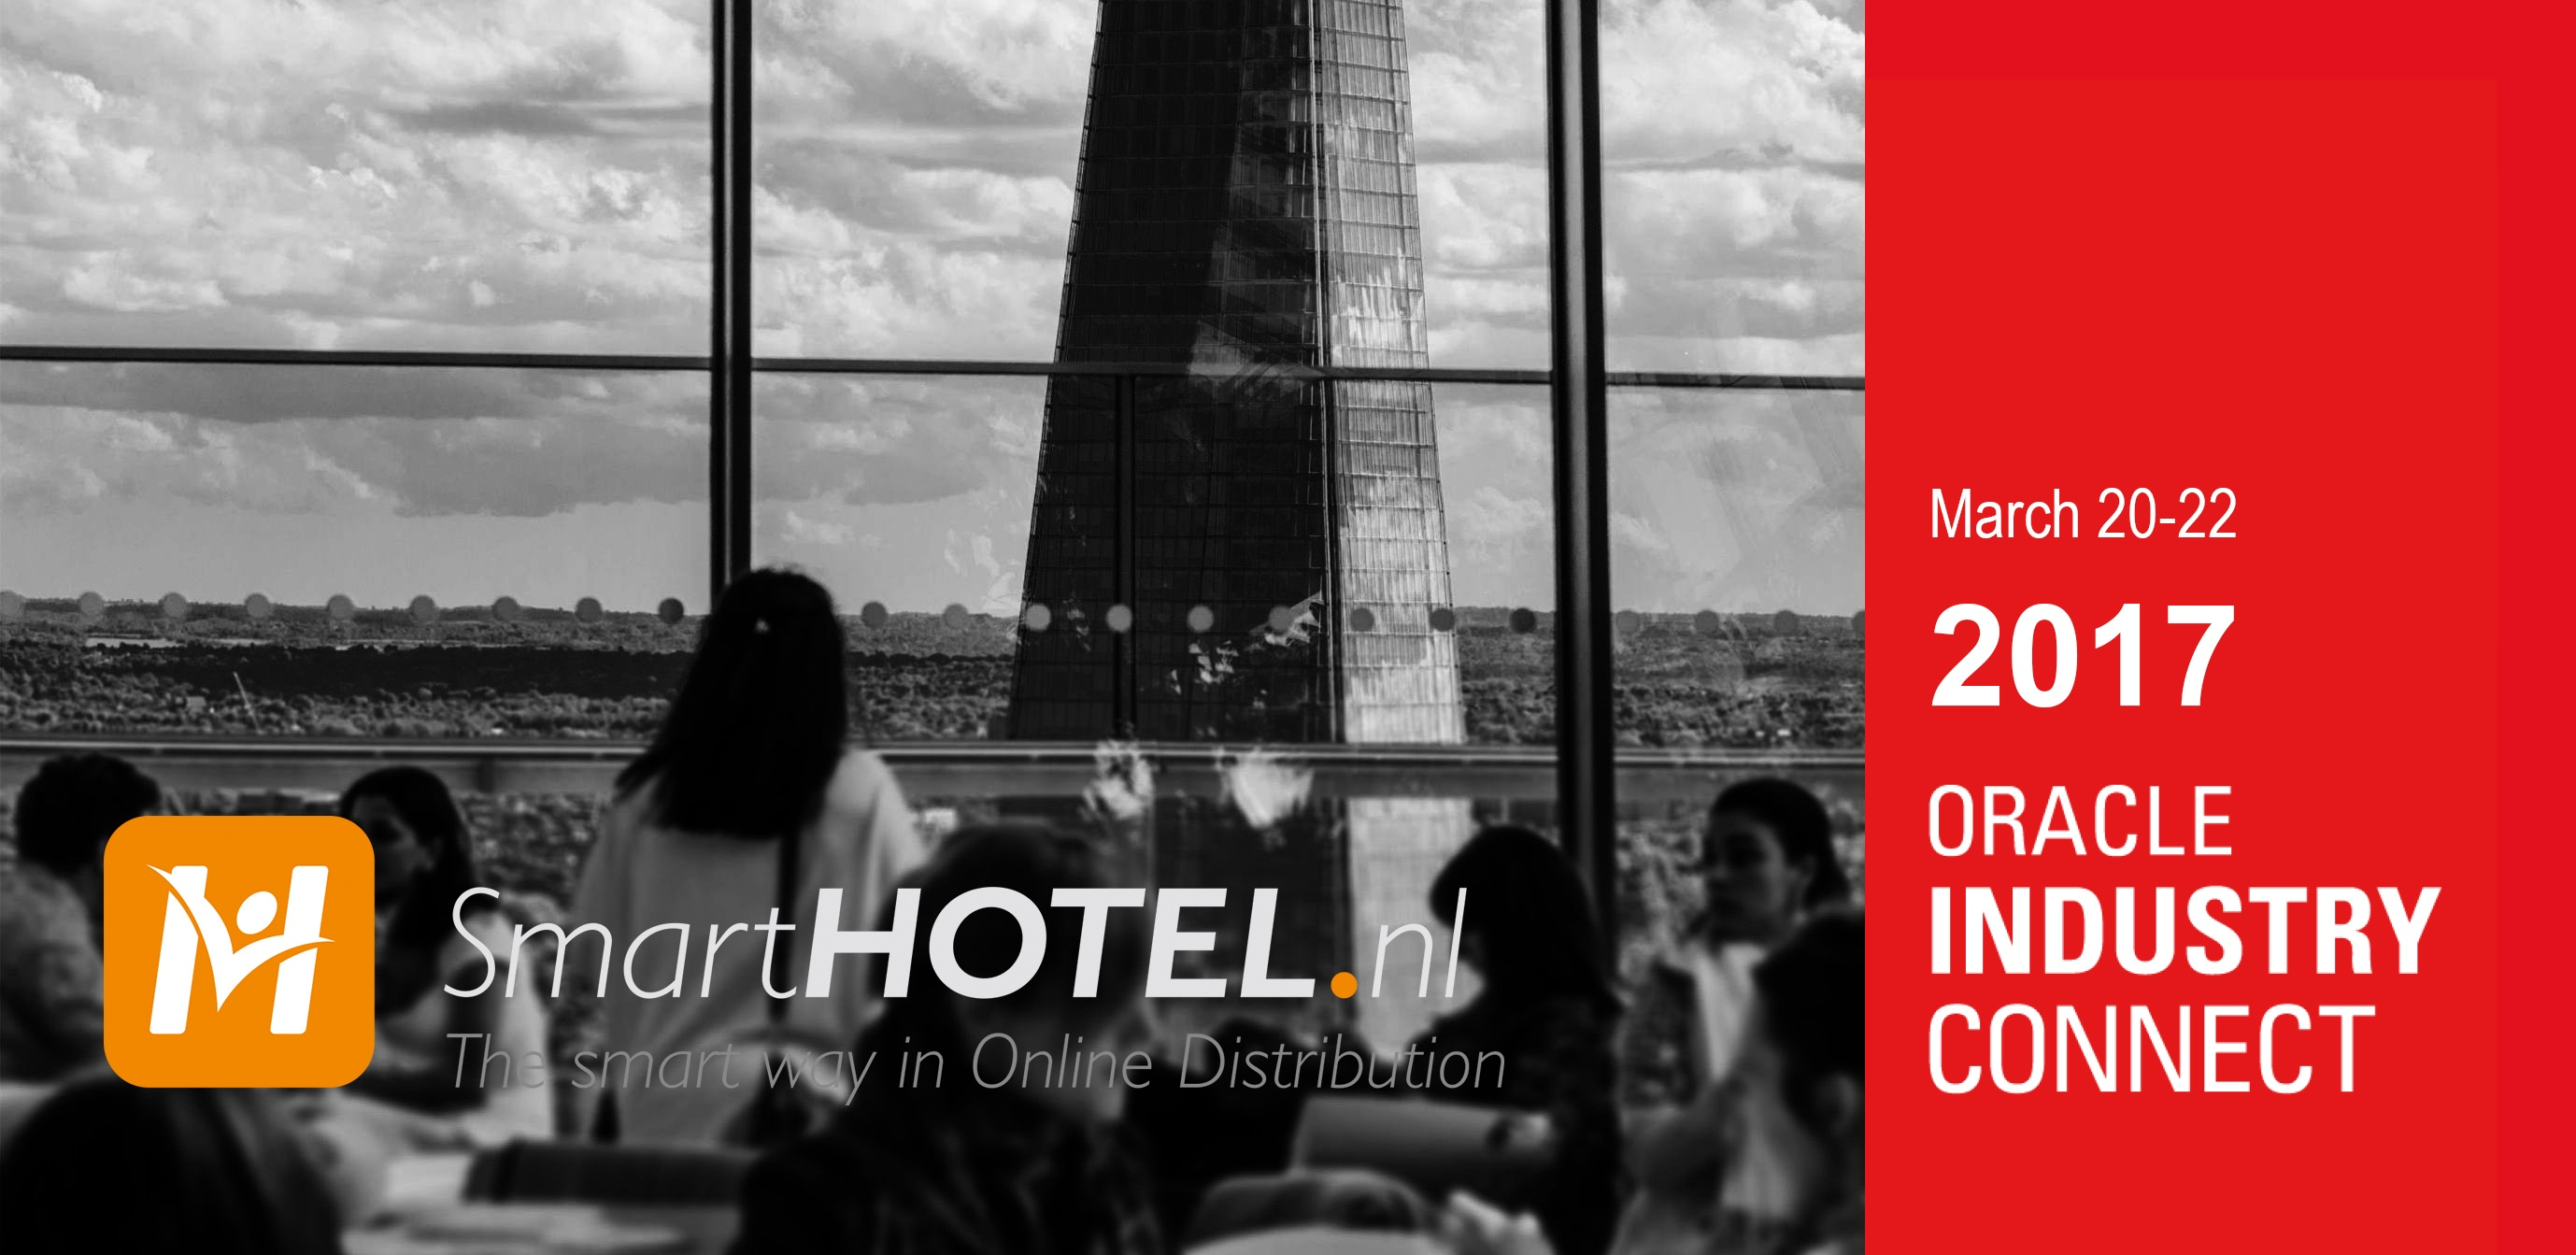 SmartHOTEL is attending: Oracle Industry Connect 2017